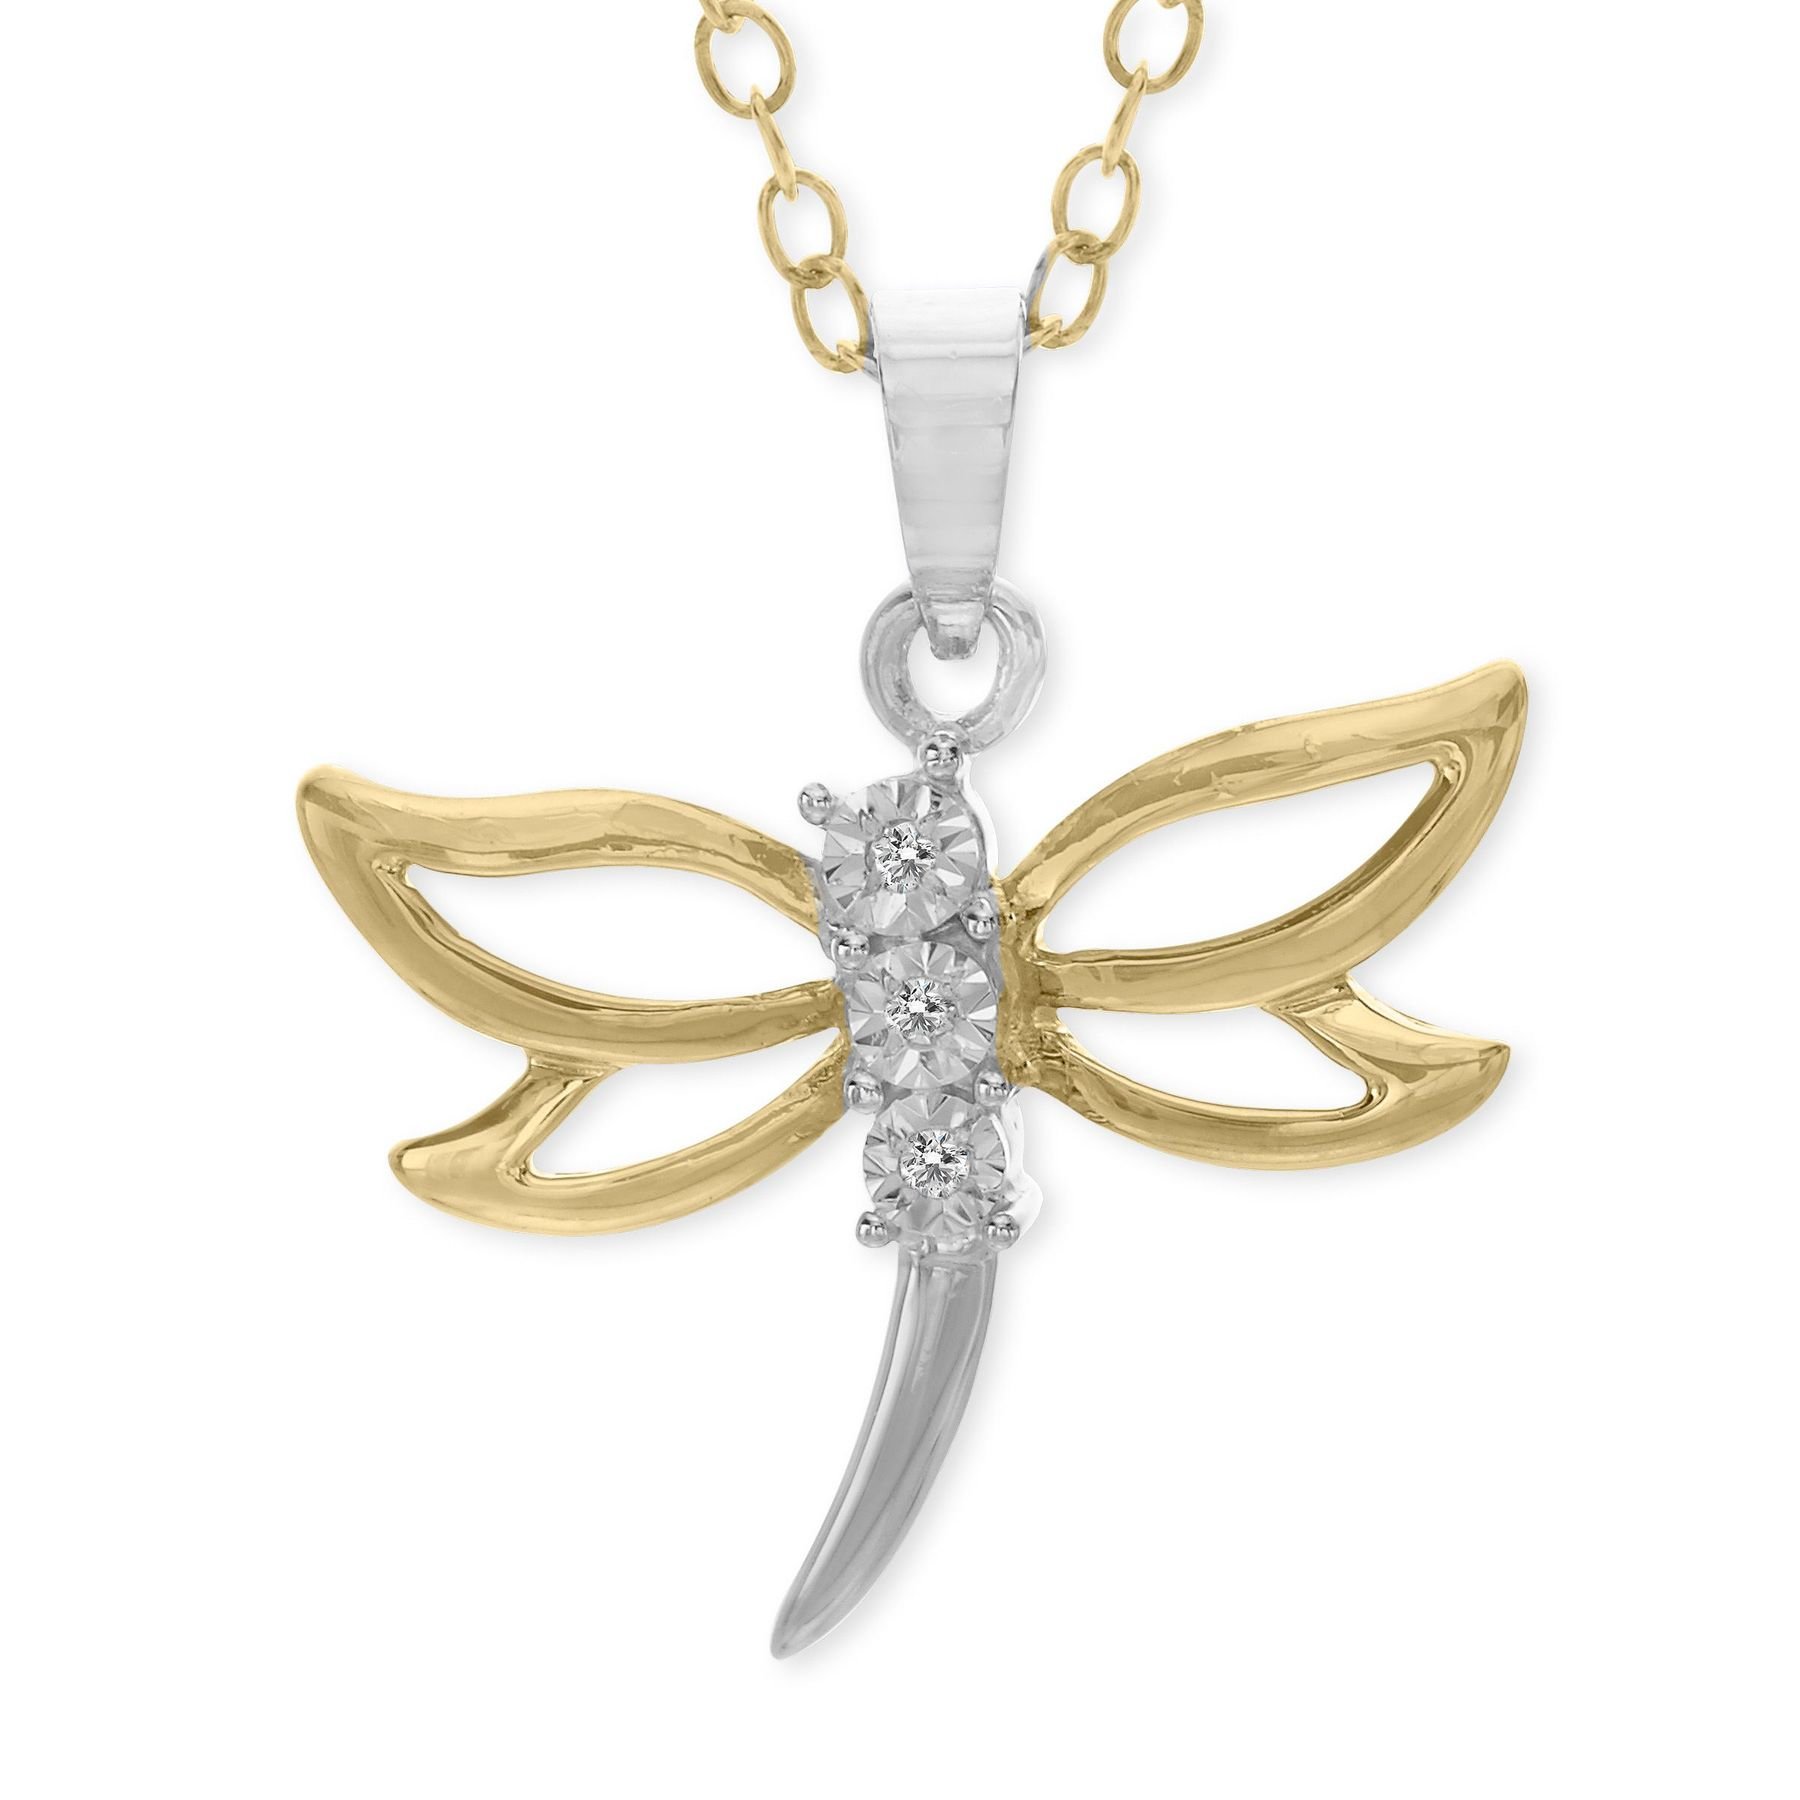 dragonfly gold watches free fremada yellow overstock pendant inches necklace italian today product jewelry shipping